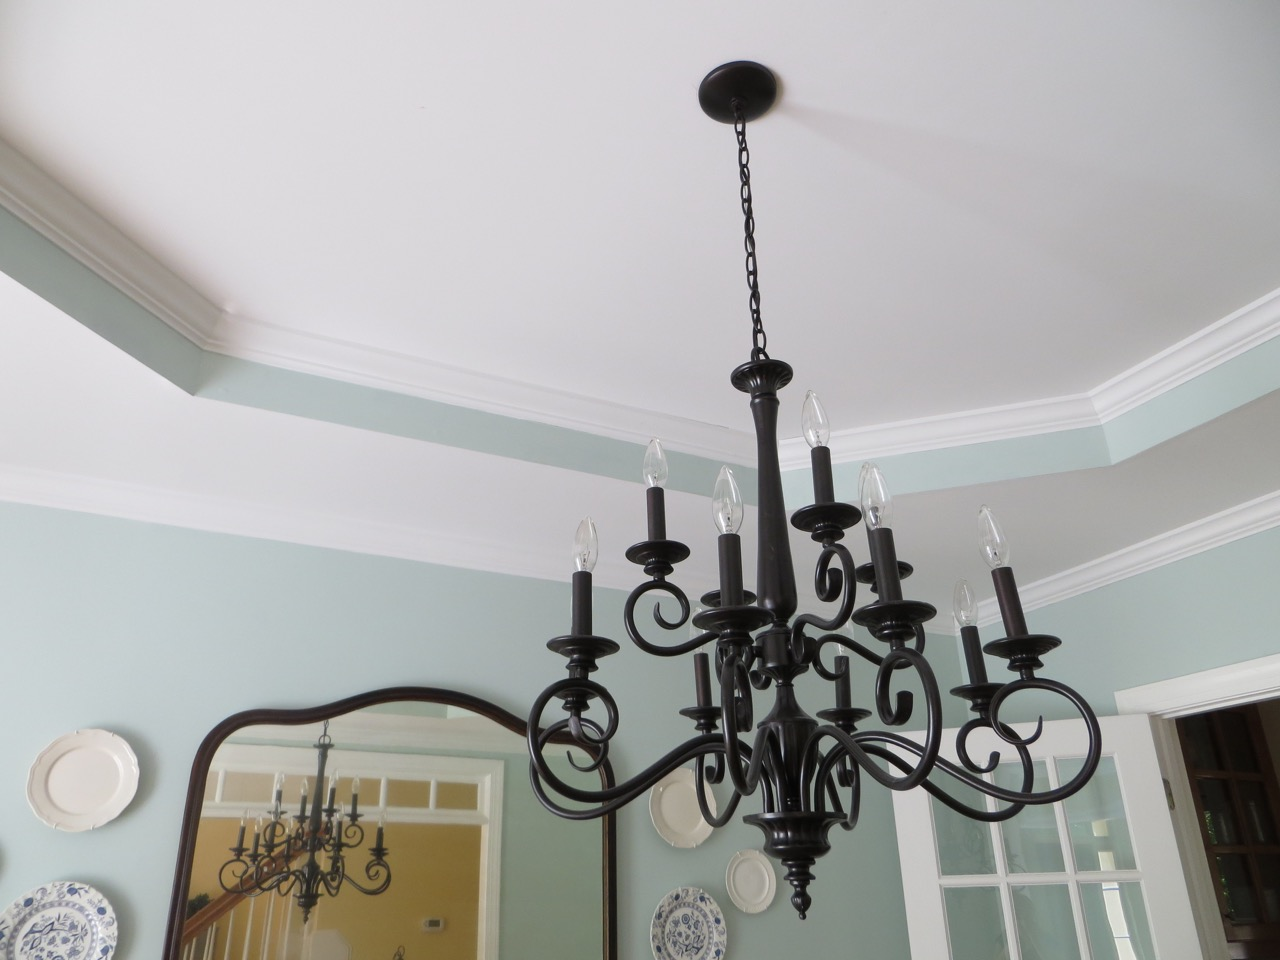 how to rewire a chandelier and switch out light fixtures  the, Lighting ideas